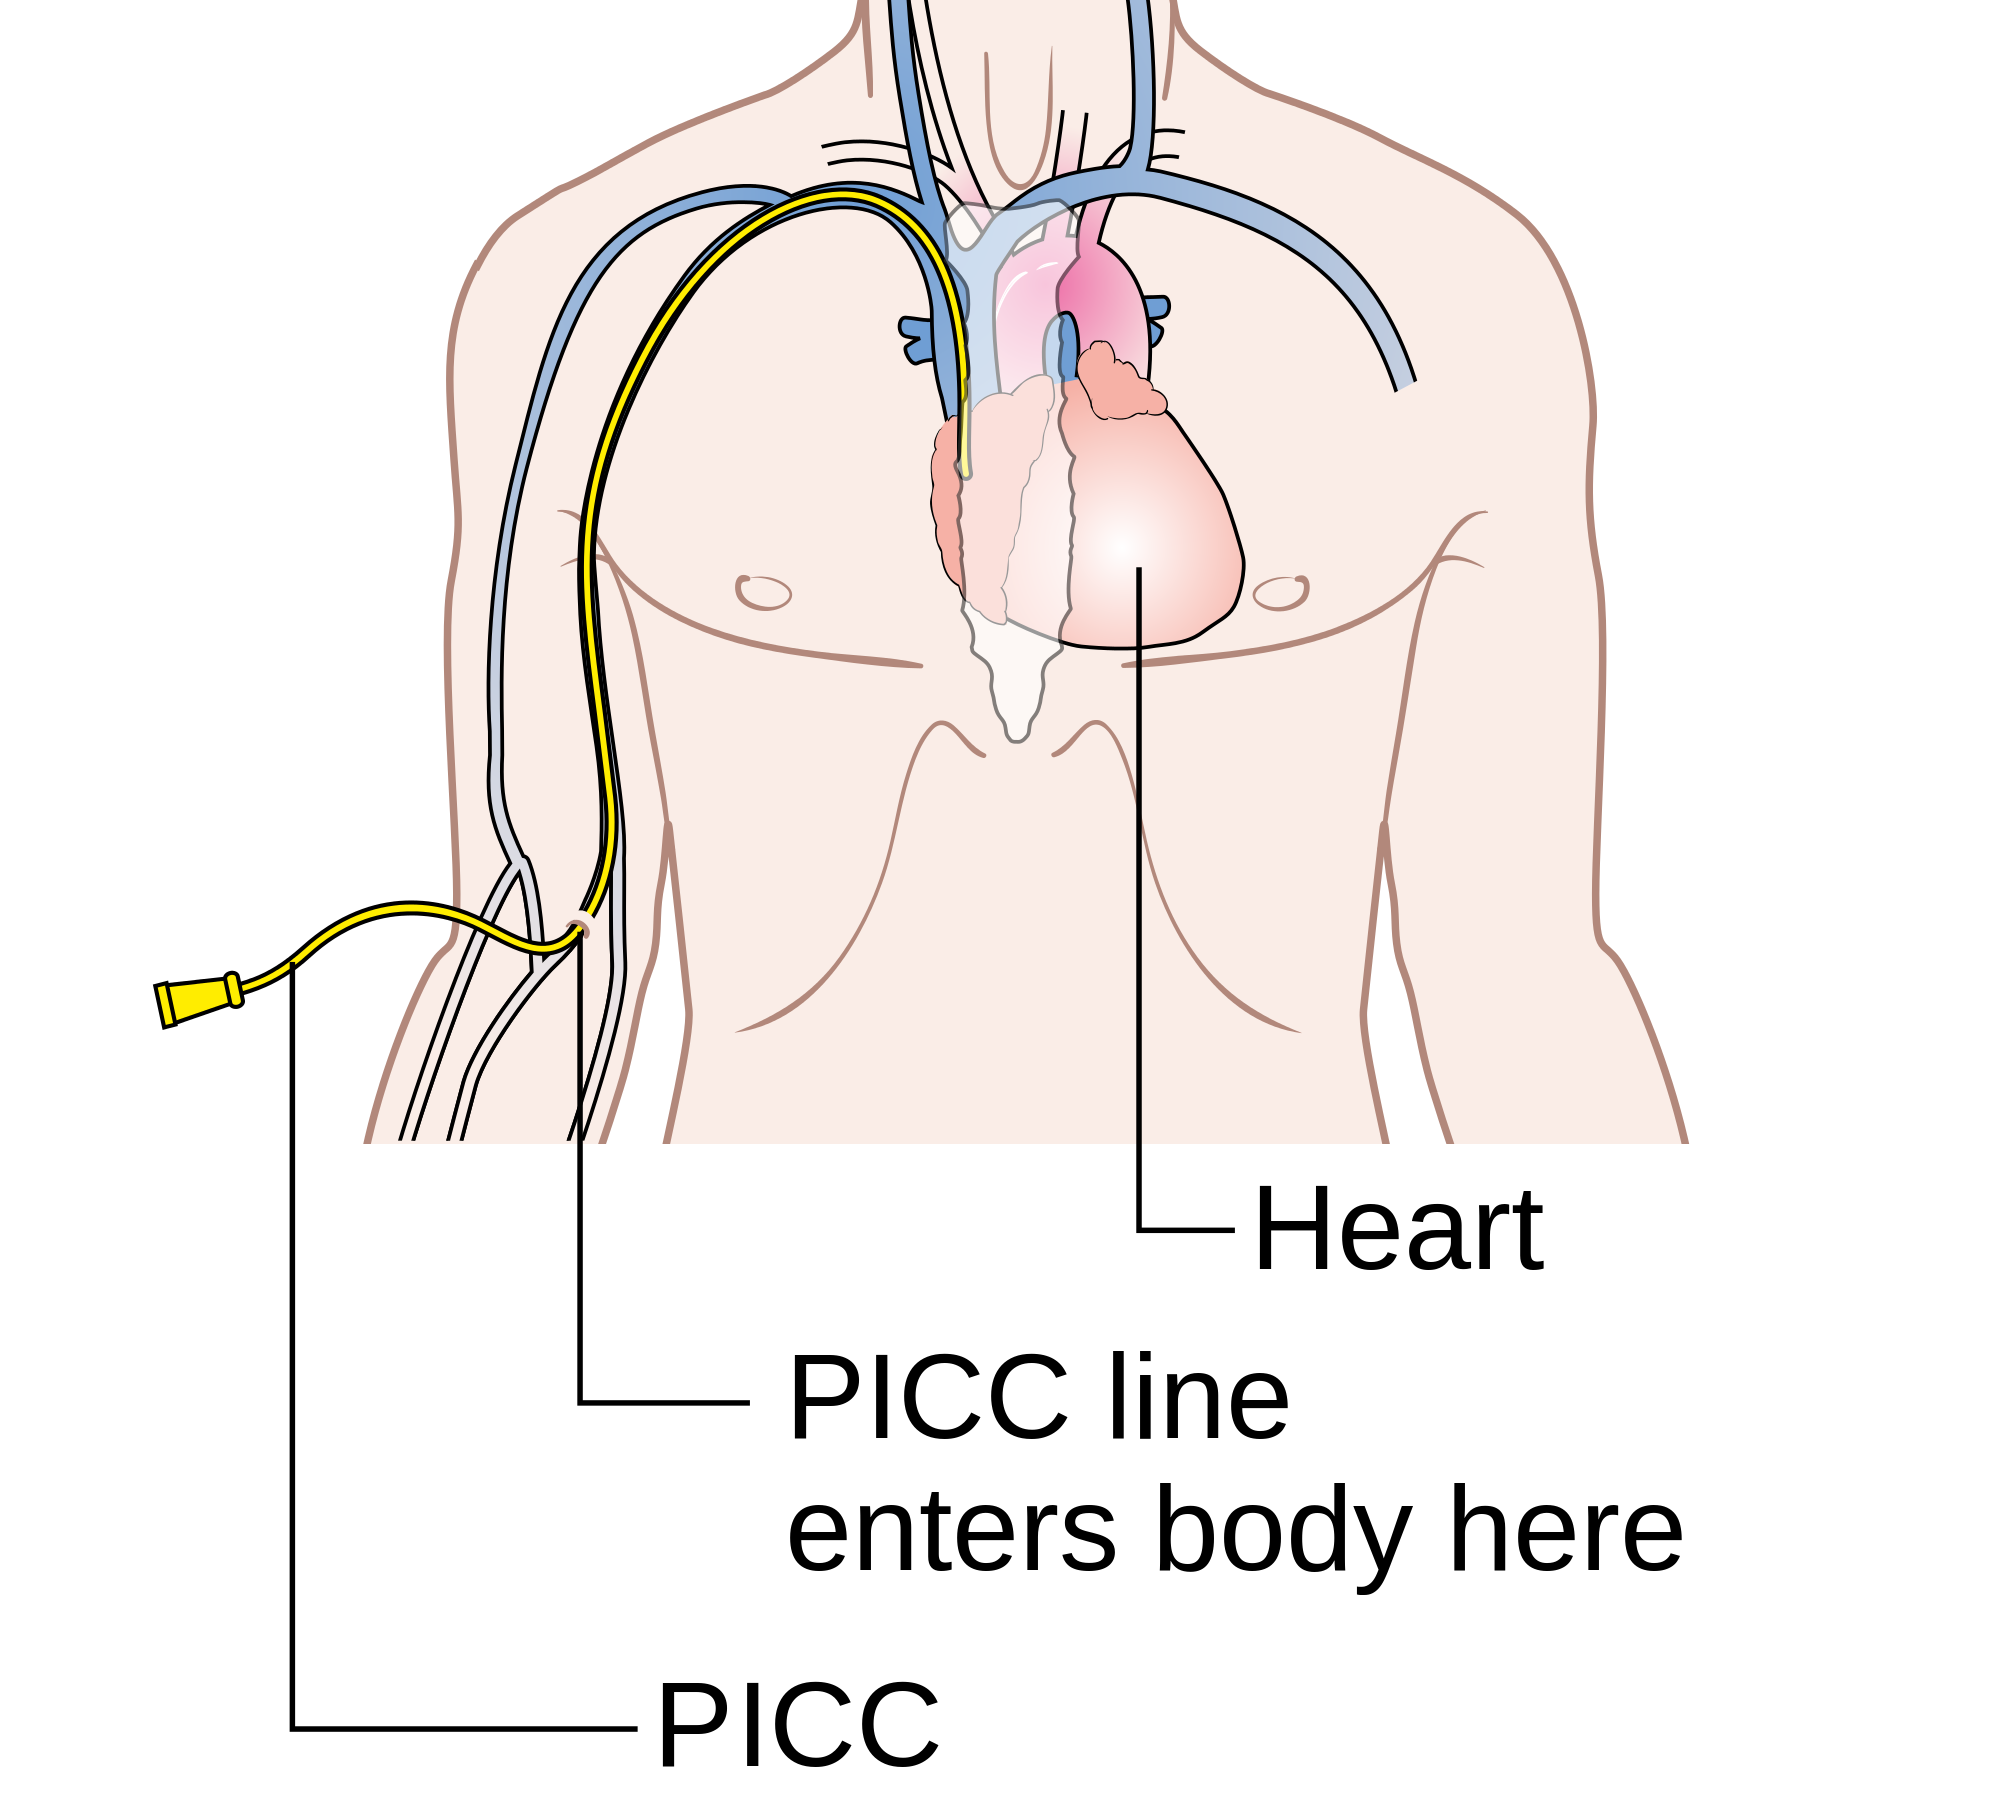 How To Take Care Of A Picc Line